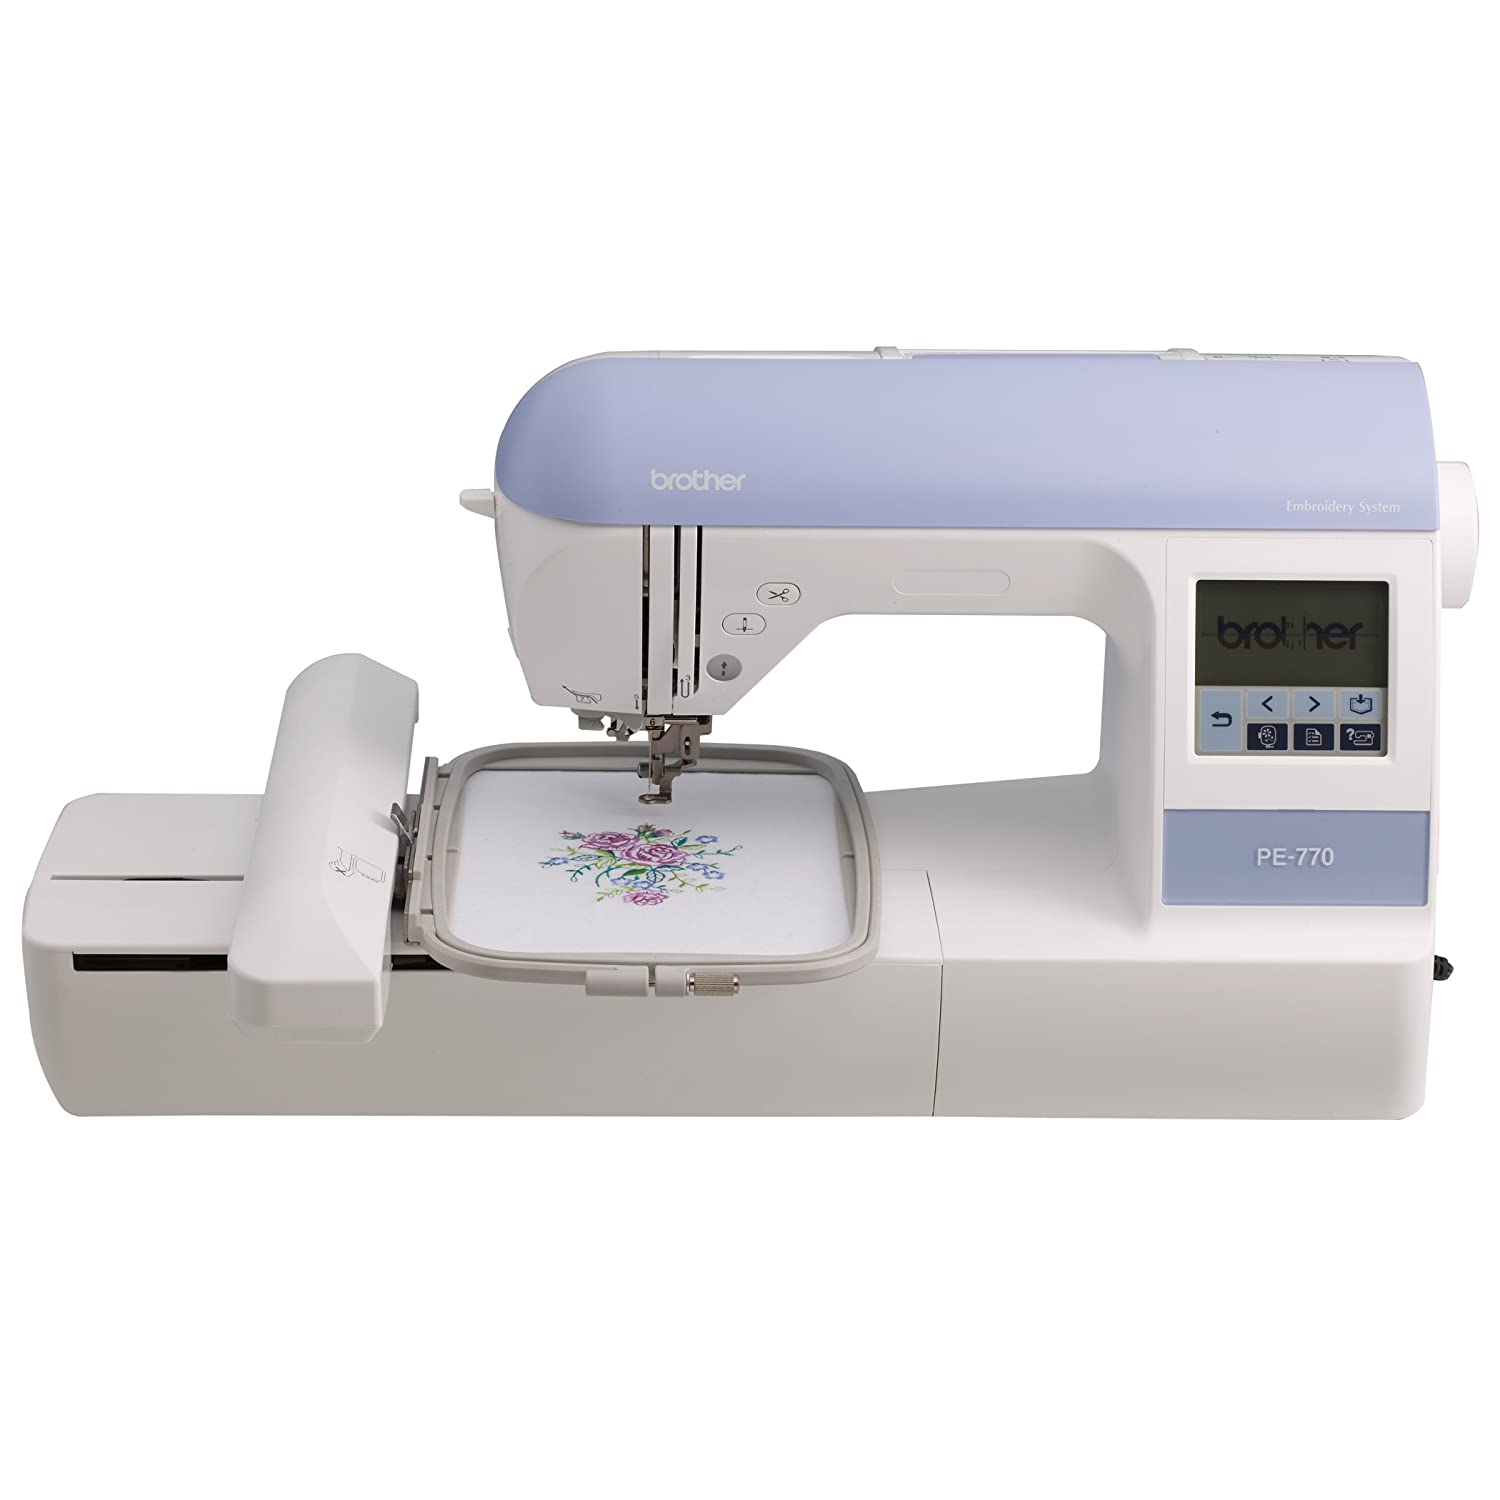 Sibling PE770 5X7 inches Embroidery-only Machine along With Built-in Memory